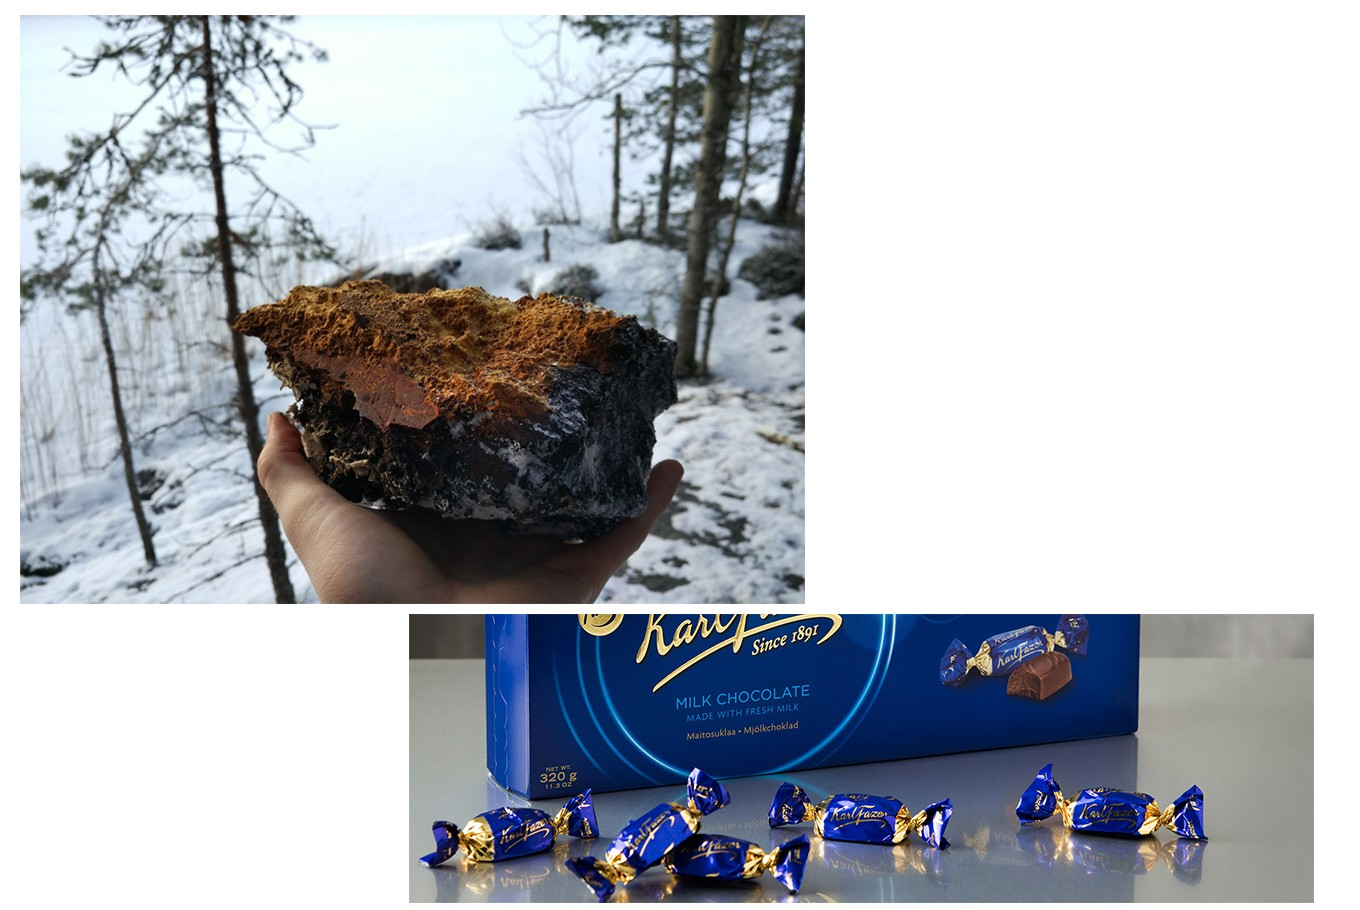 FINLAND - Drink: I always bring chaga mushrooms… a fungus found primarily on birch trees in colder climates across the Northern Hemisphere. They can be boiled and used as a cold or hot drink. I like it because its health benefits are plentiful, many of which can be attributed to its immune-boosting ingredients and antioxidants. I think the only place to find it is Finland, so one needs to travel there to have it–but it is worth the trip. I have offered this drink to many of my Indonesian friends who absolutely loved it and said that it made them feel healthier. <br><br> Eat: I usually bring some chocolate made by Karl Fazer (fazer.com), which is a confectionary established in Helsinki in the late 19th century. The taste of Fazer's iconic Blue Wrapper milk chocolate is sensational! One can find Fazer products at all in international airports, including Soekarno-Hatta airport. (Pirjo-Liisa Heikkilä, Political Counsellor, Embassy of Finland)